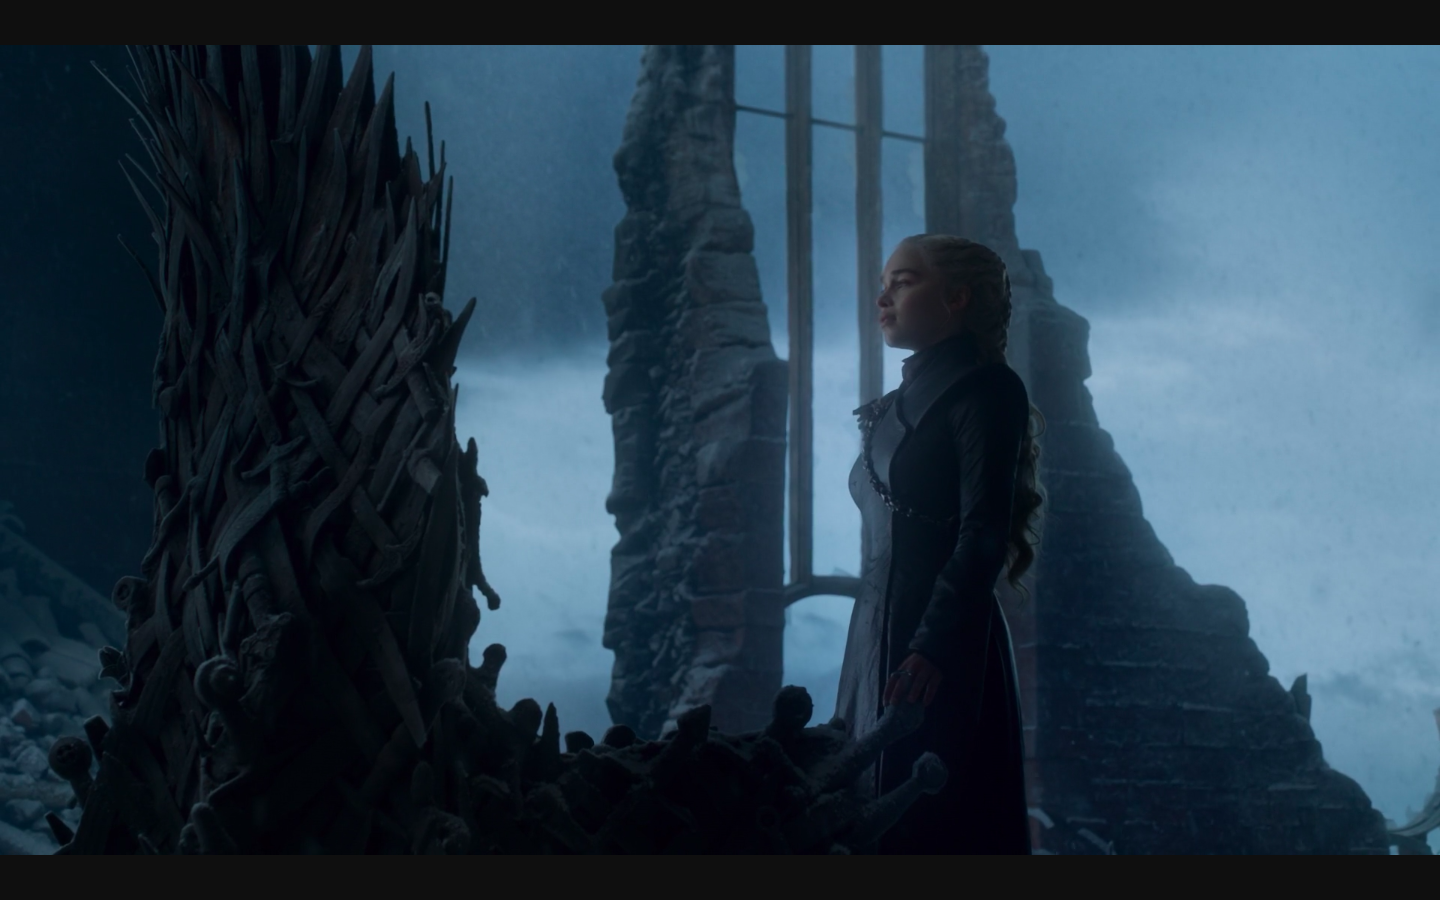 The Game of Thrones finale had a chance to break the wheel. It upheld the status quo.